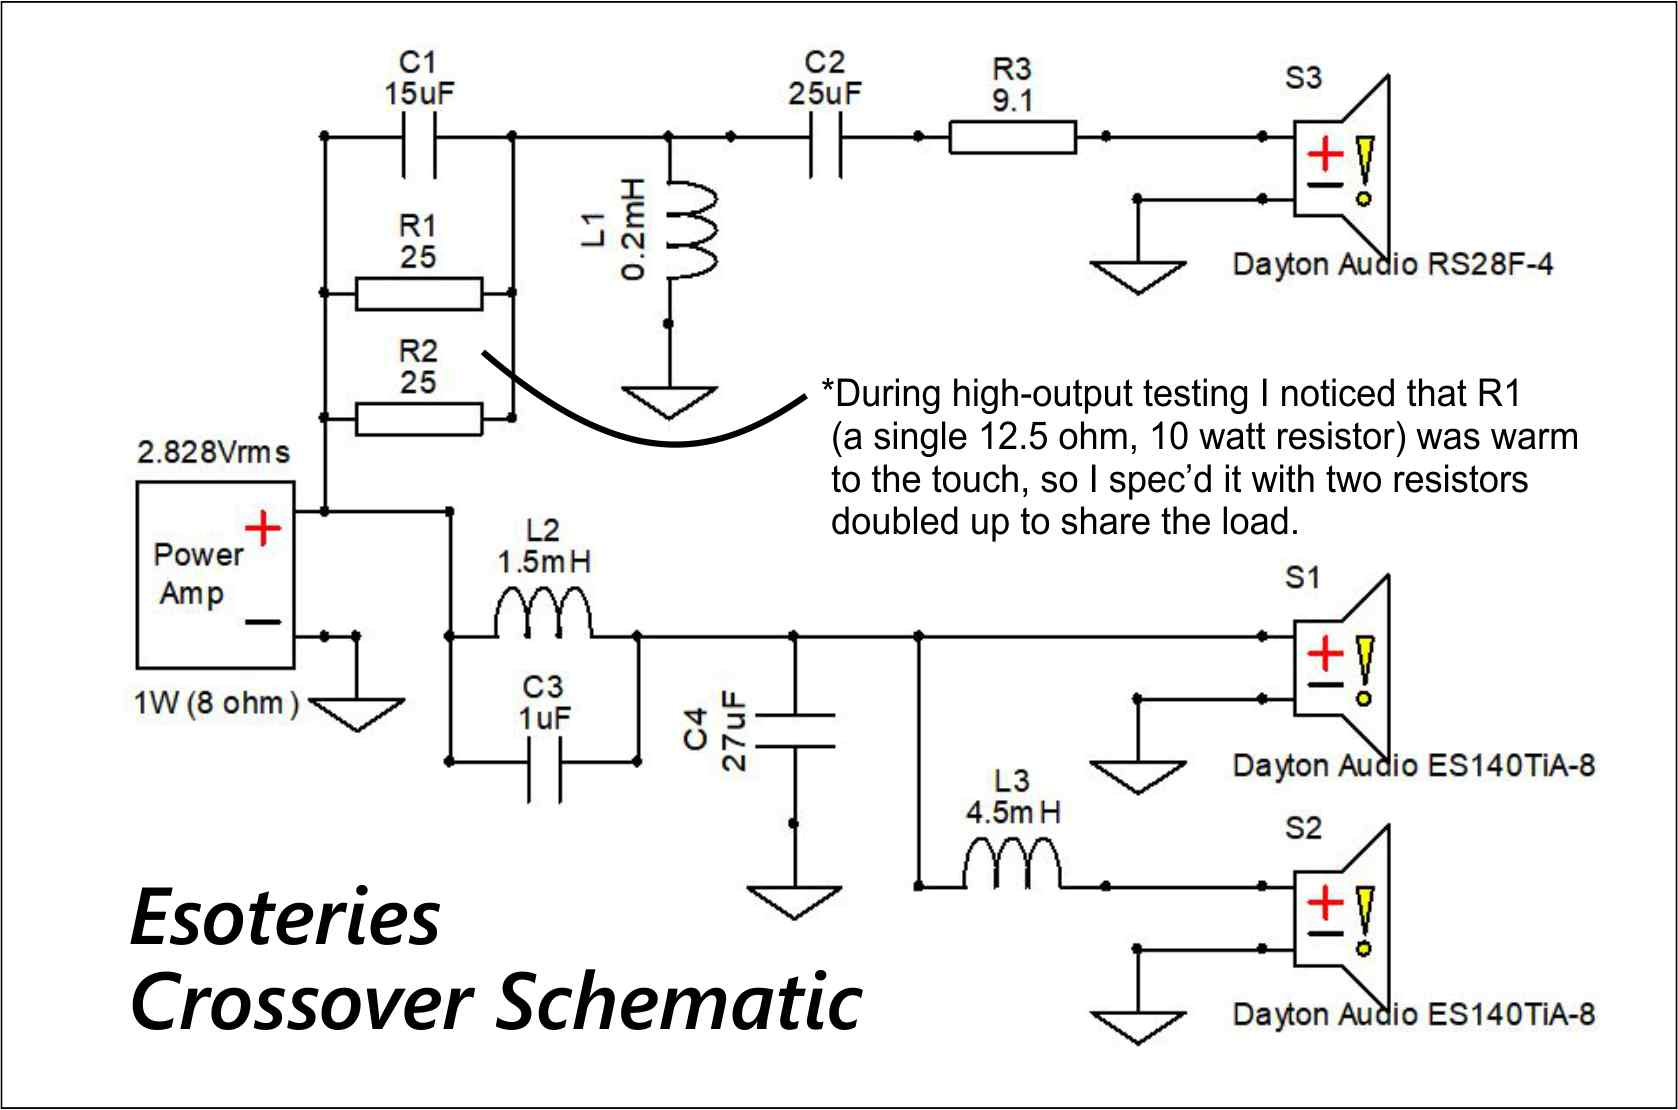 crossover schematic | Parts Express Project Gallery